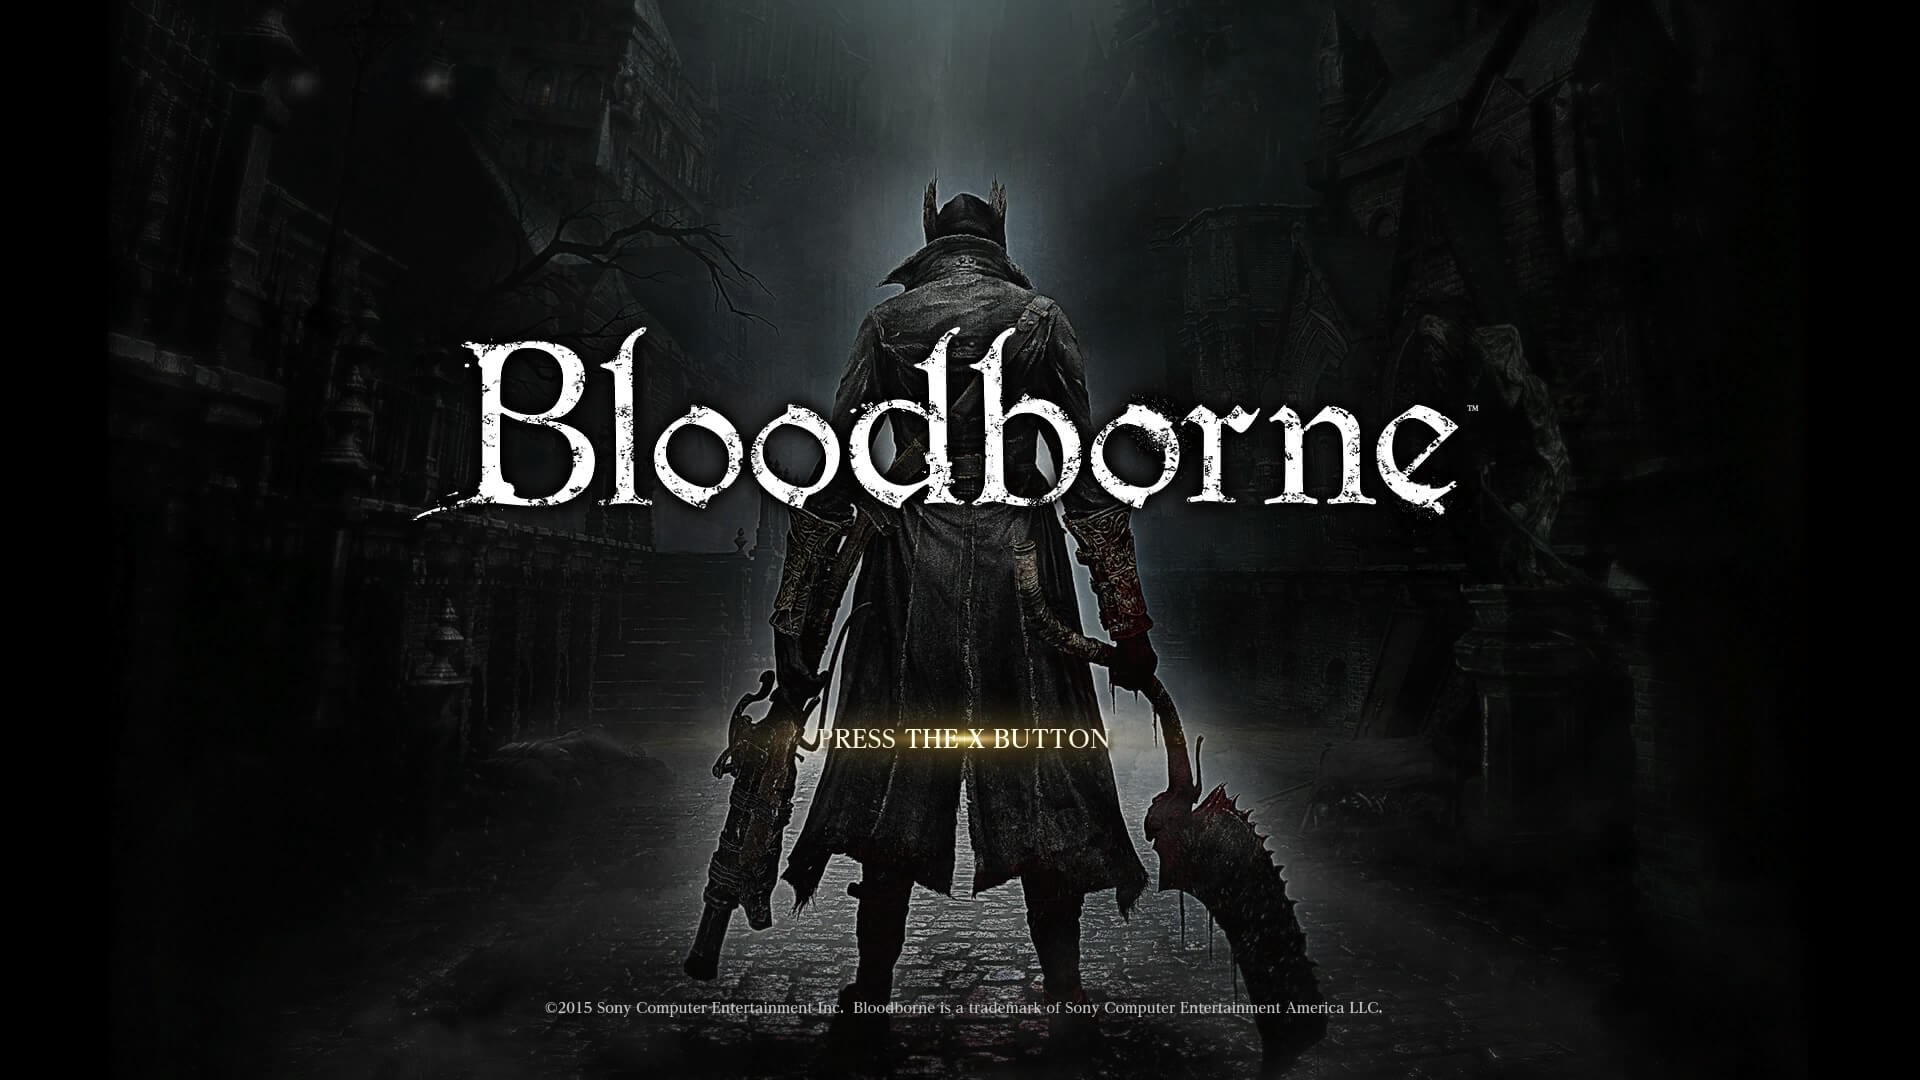 bloodborne-press-the-button